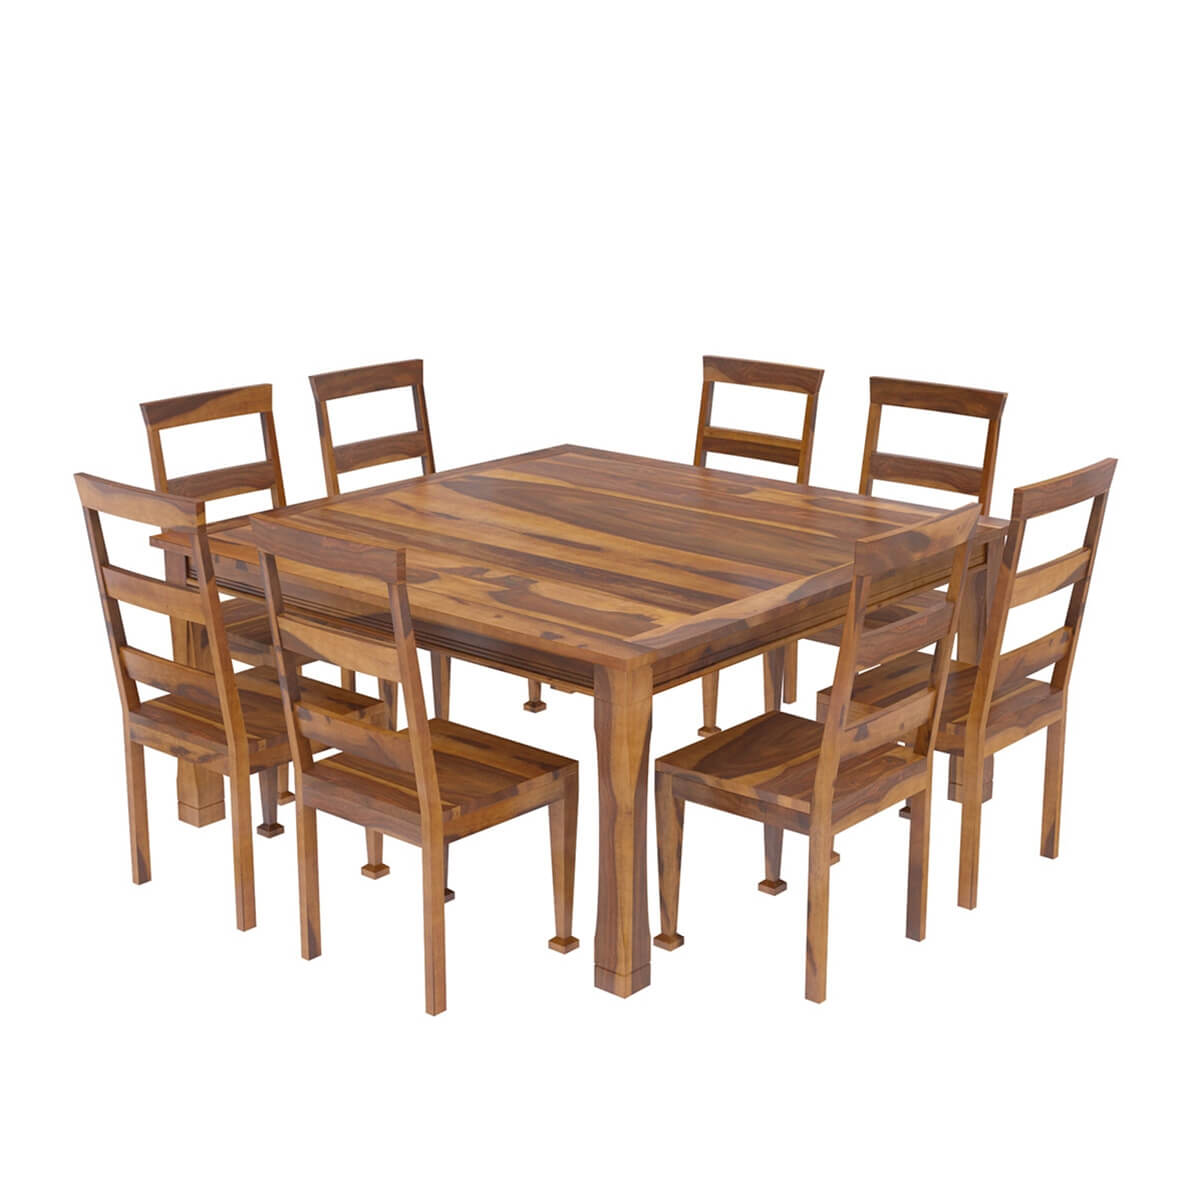 Square Dining Chairs: Appalachian Wood Rustic Square 9Pc Dining Table And Chair